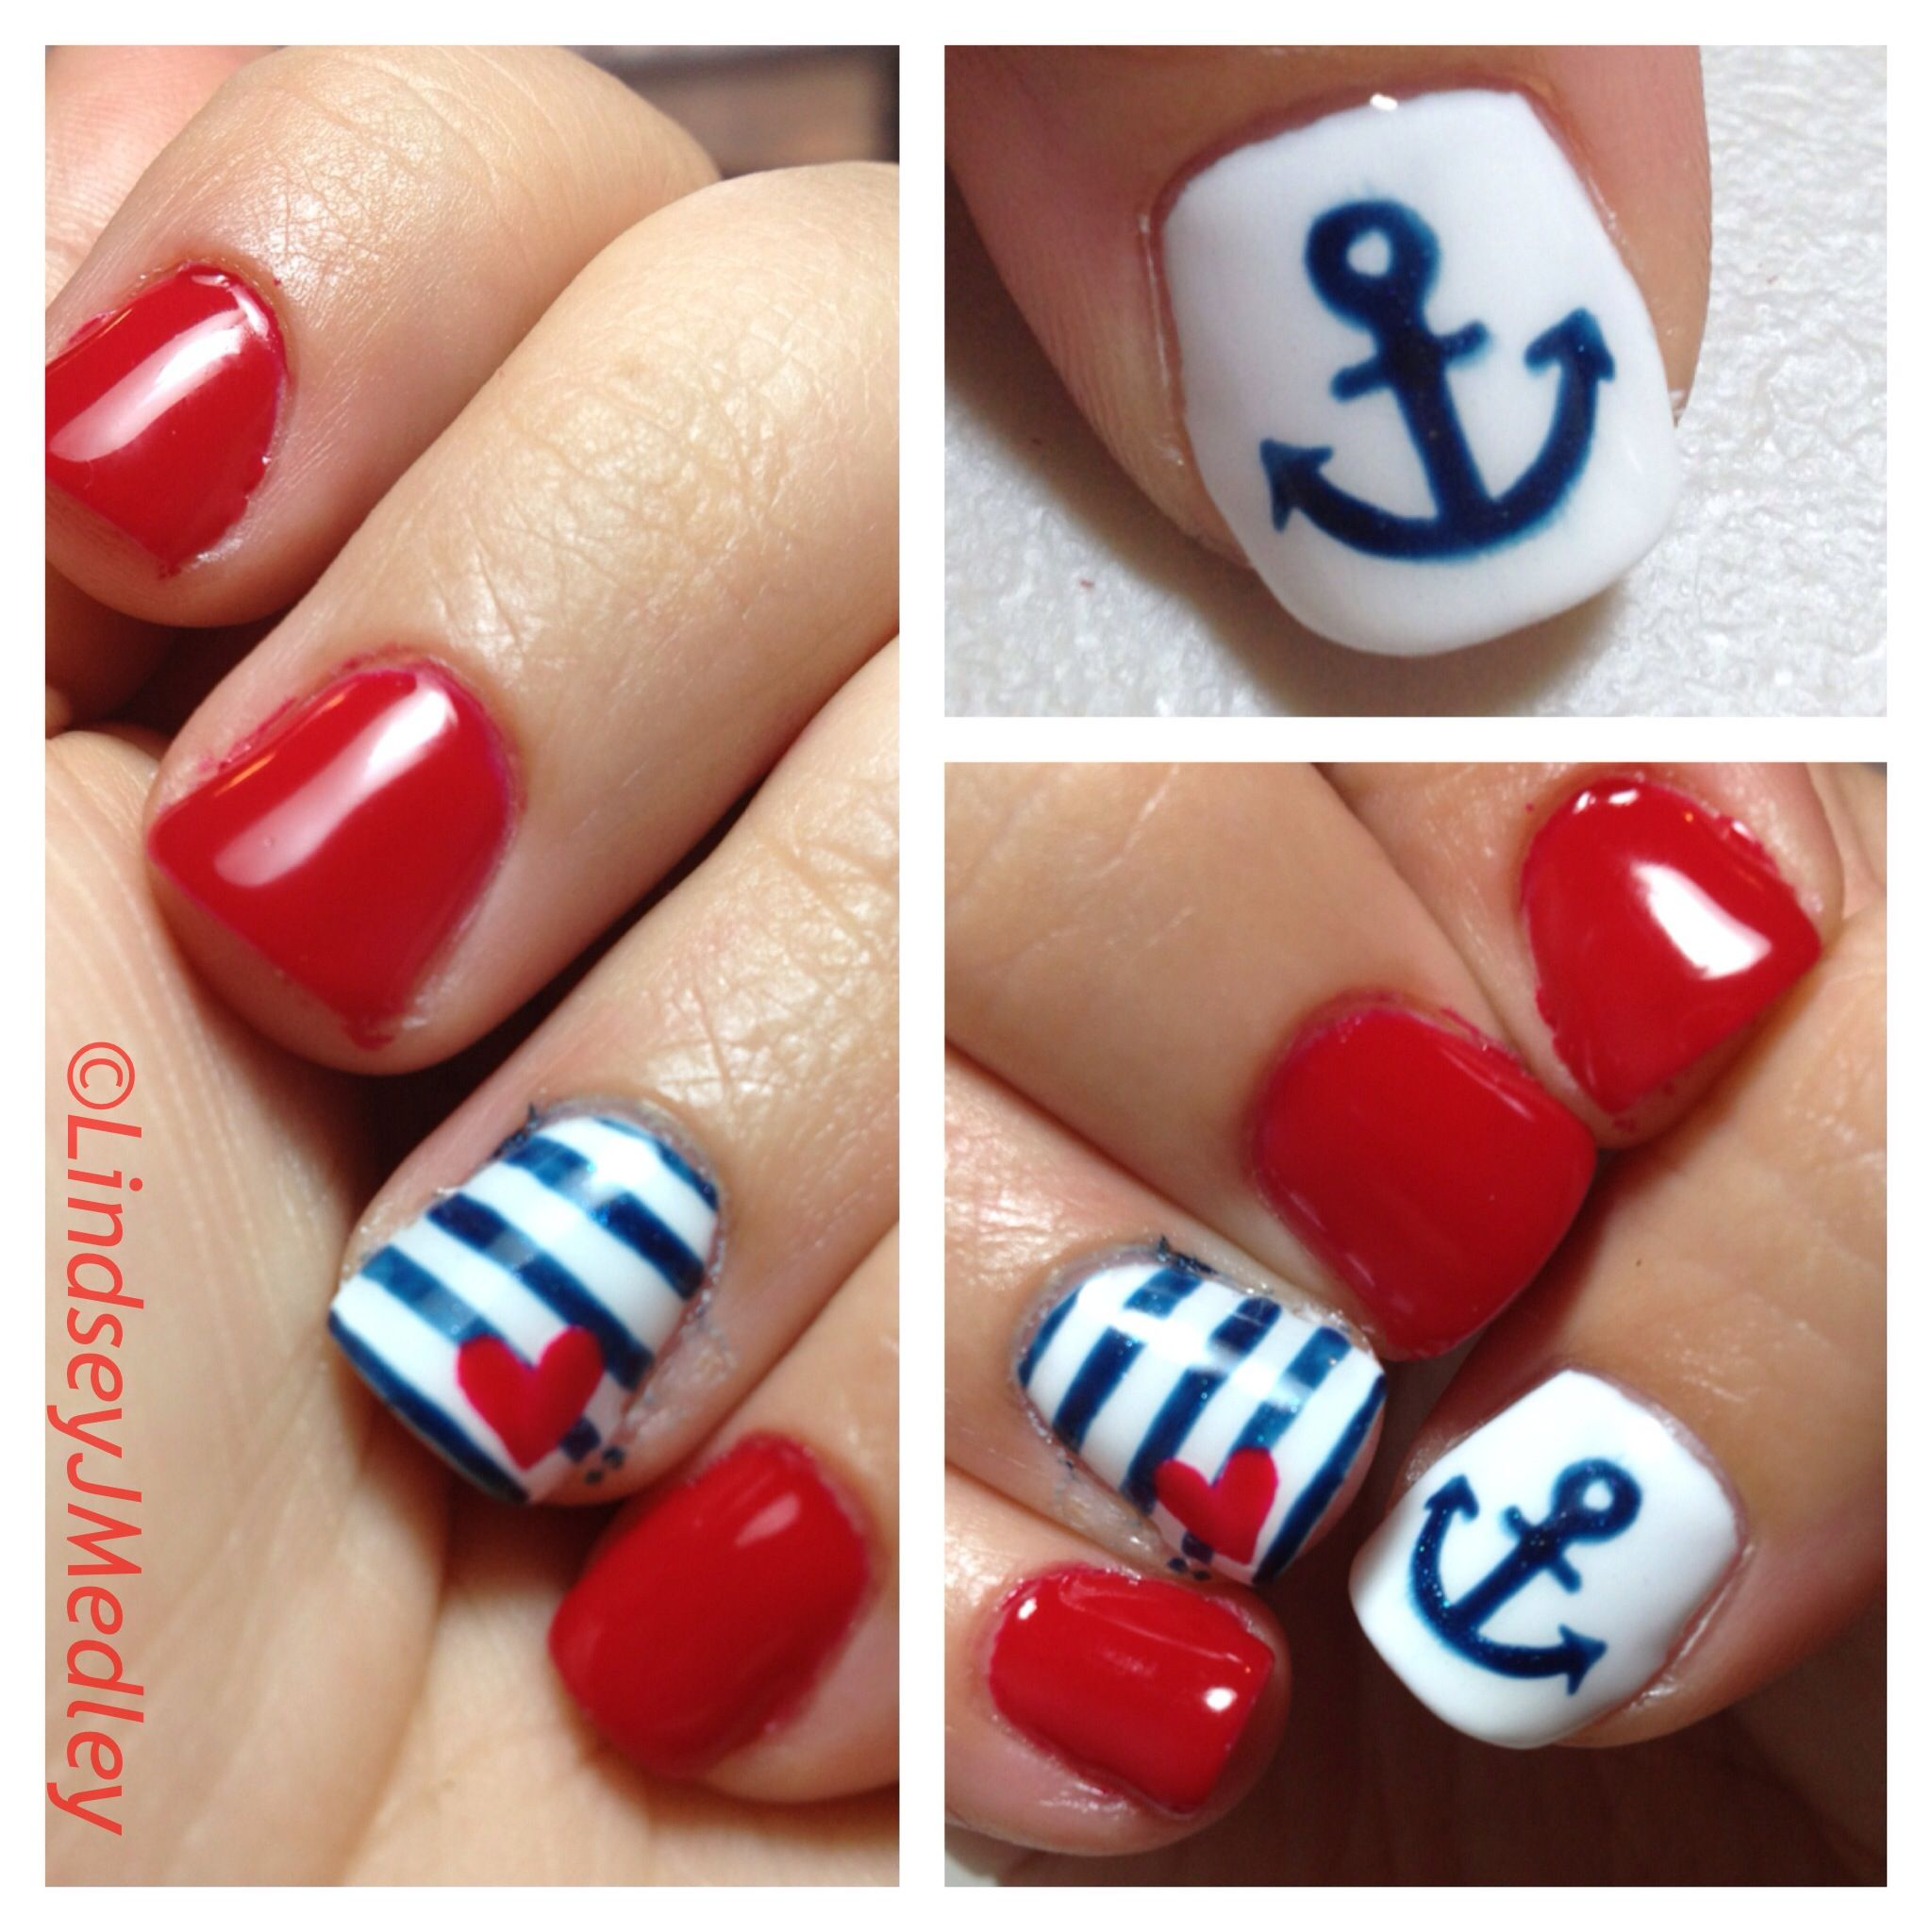 Freehand Nail Art. Shellac Nautical Nails By Lindsey J